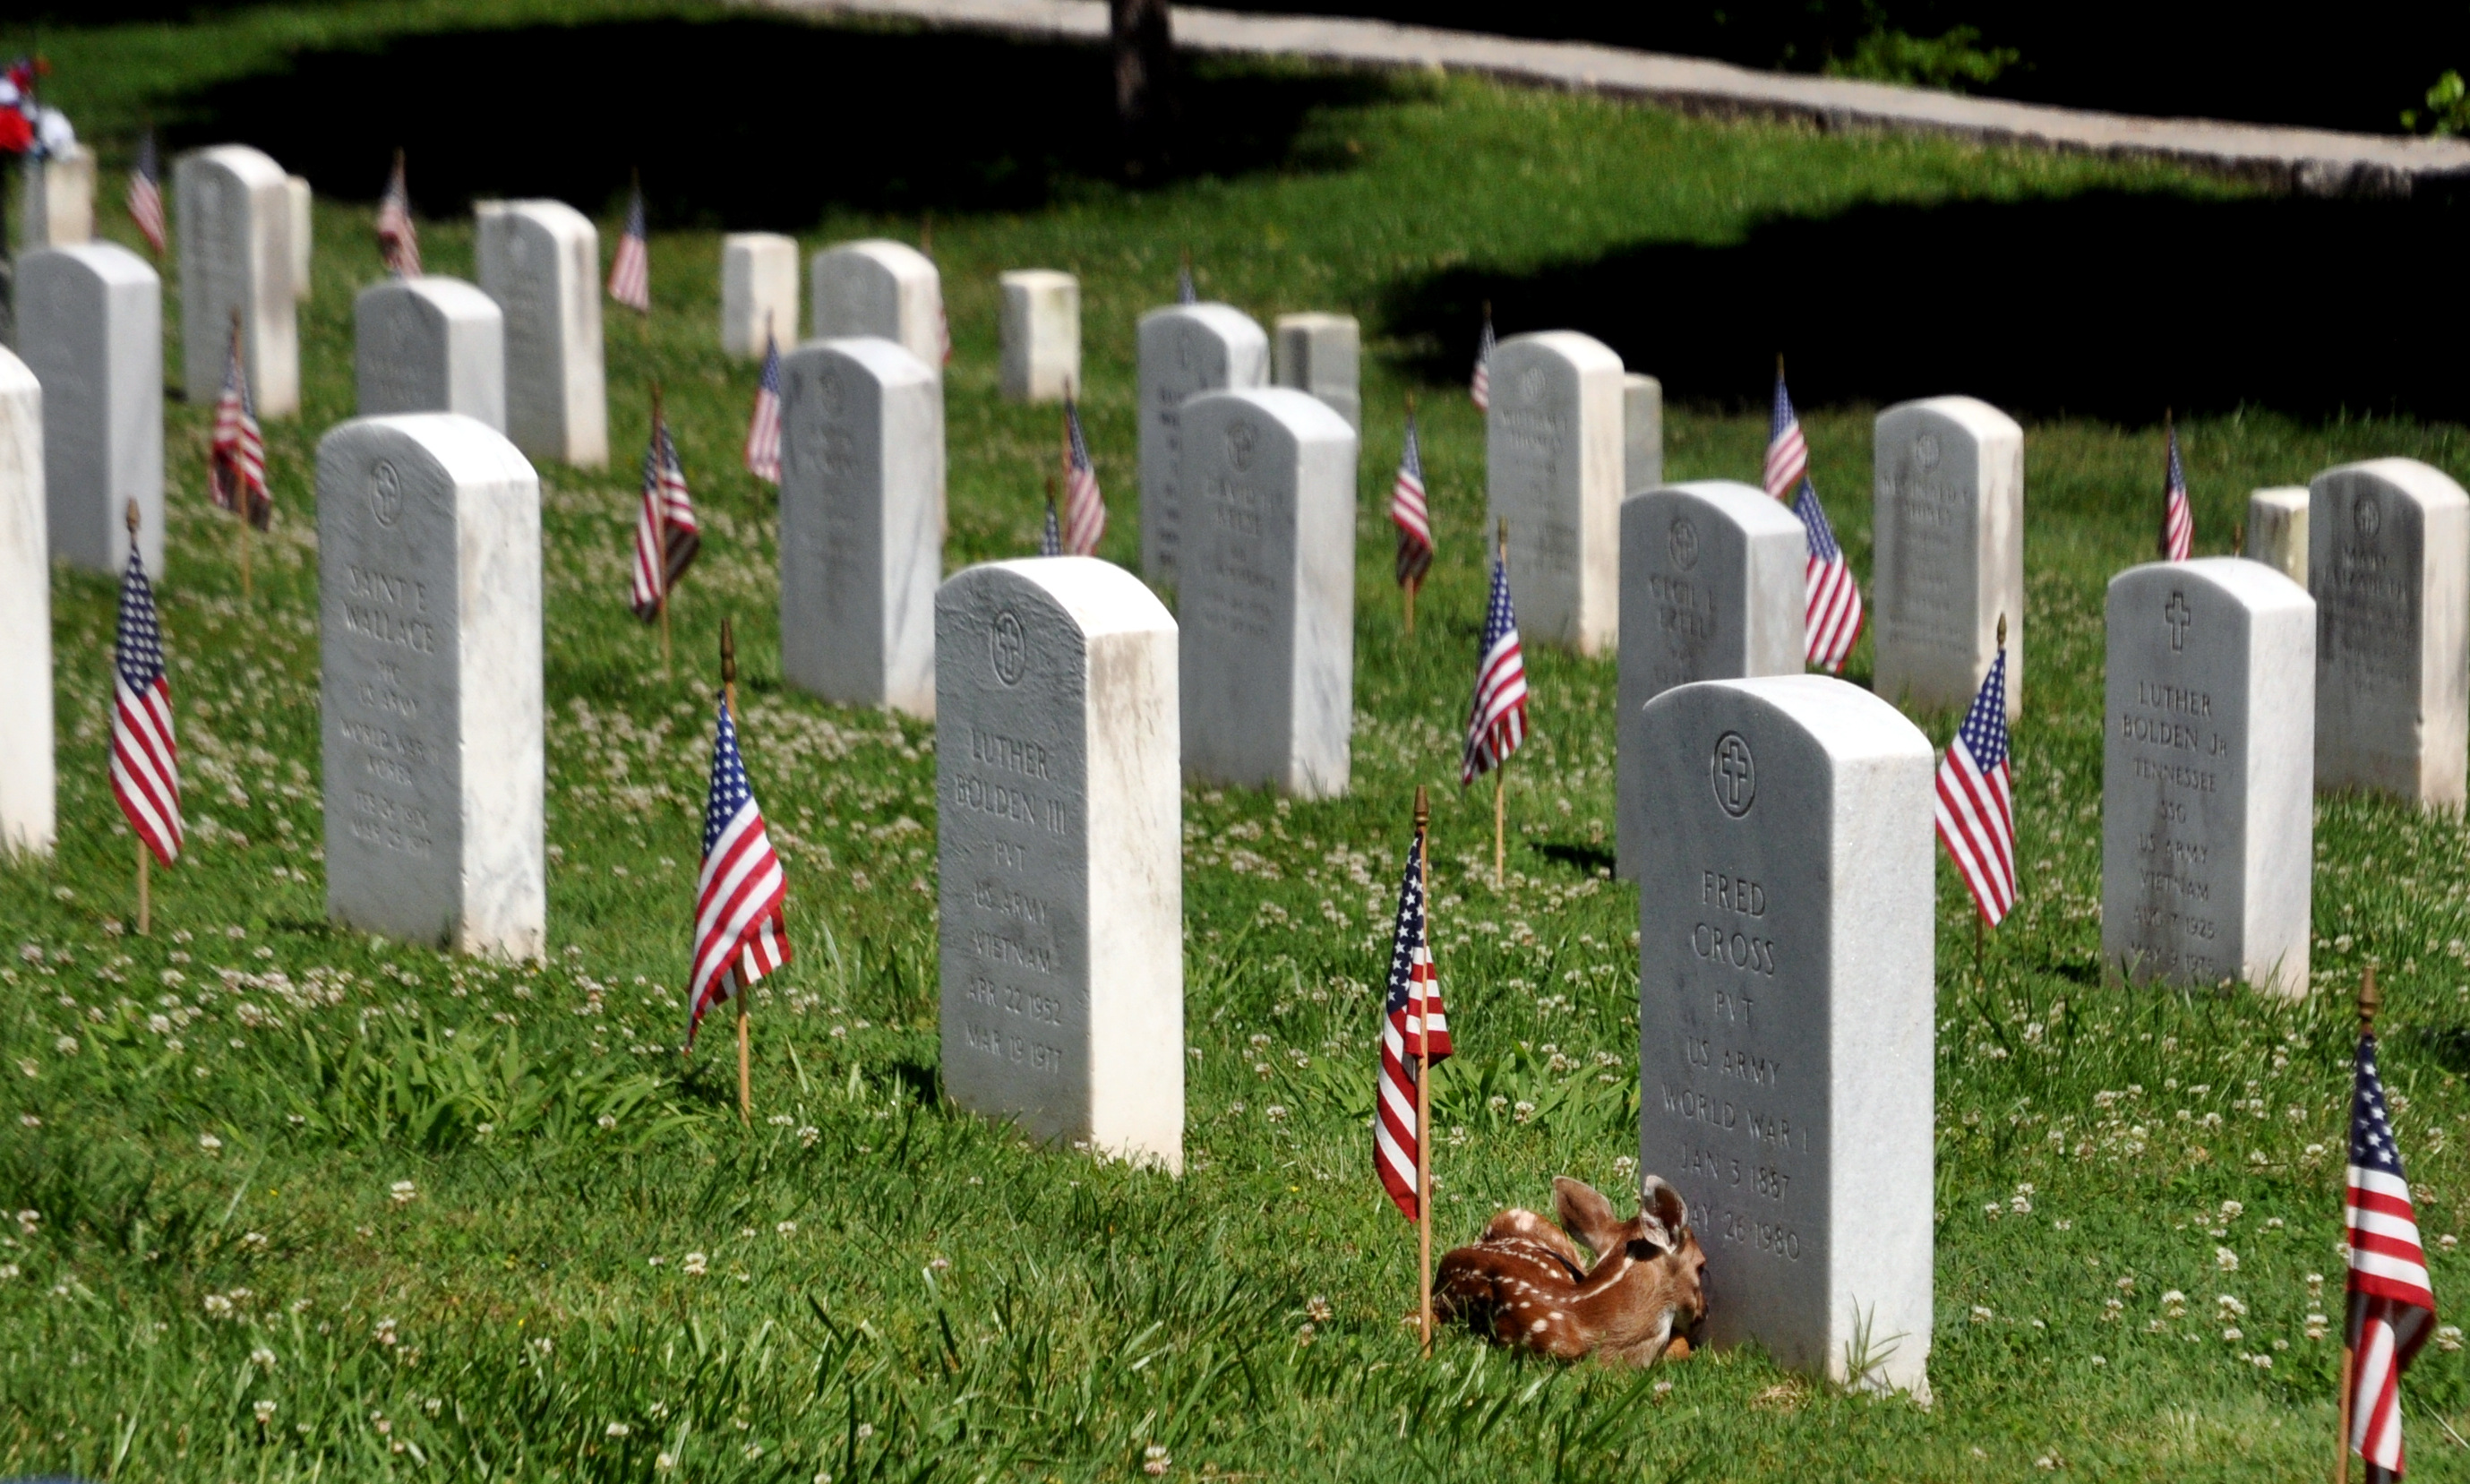 American flags placed on the graves of every veteran buried at the National Cemetery at Fort Donelson